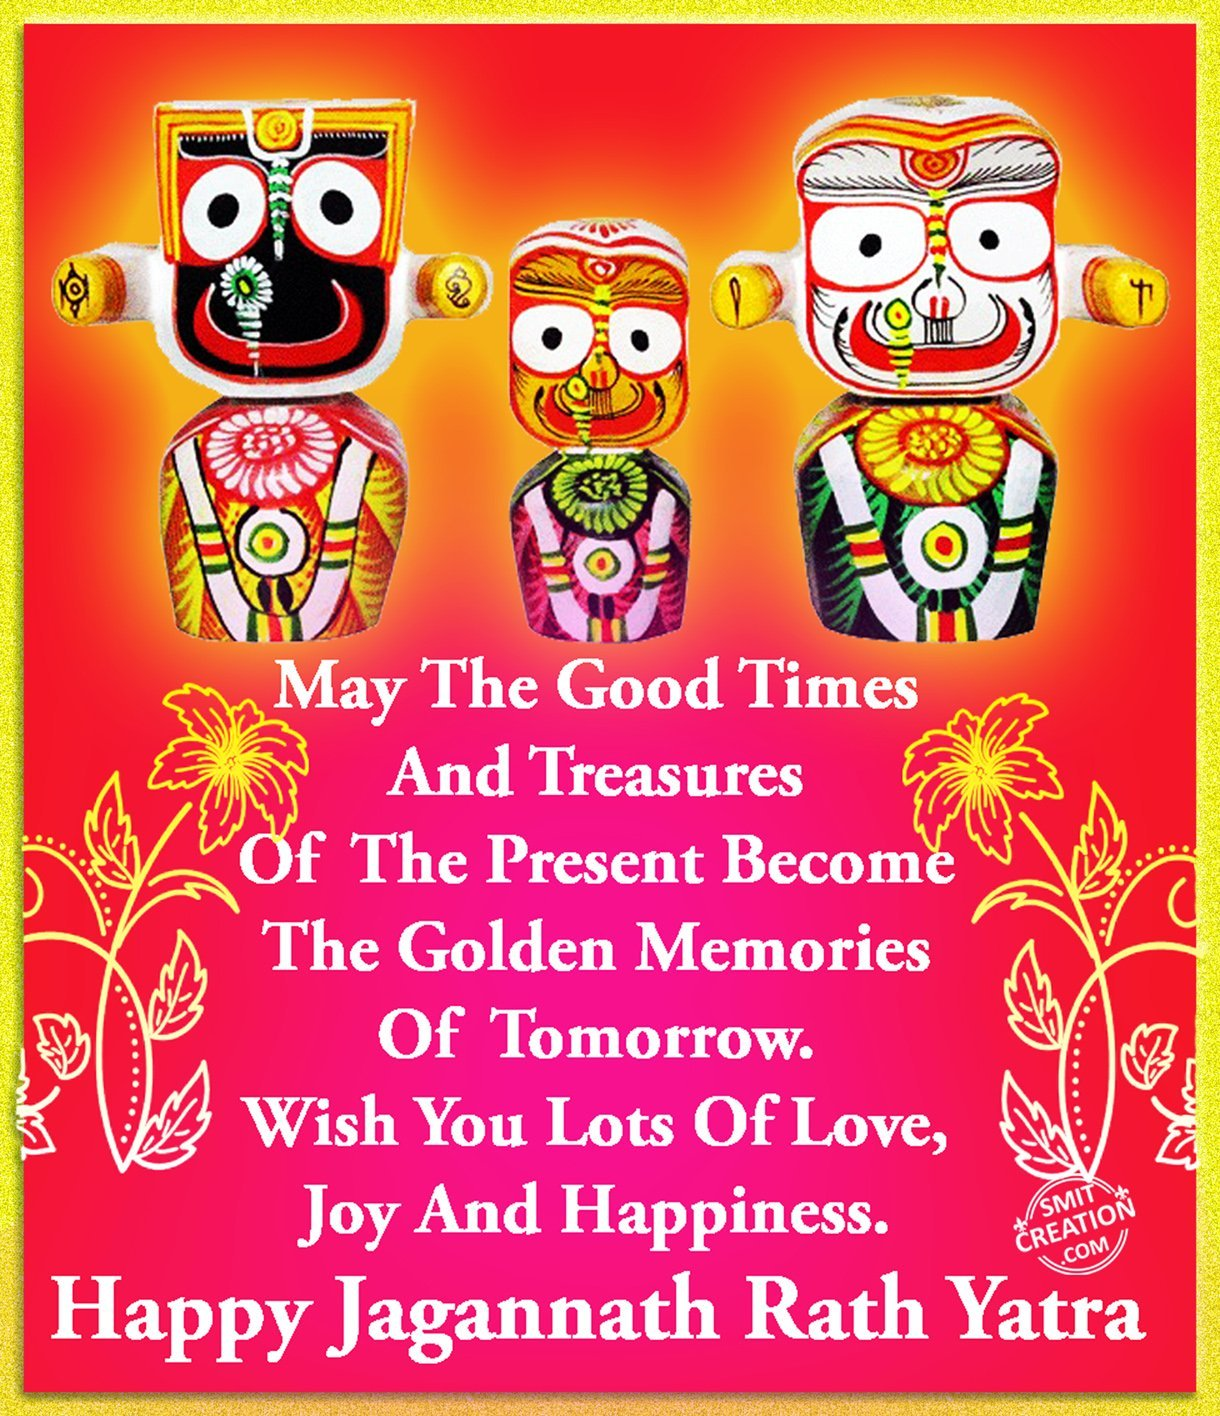 New 2016 Latest Top Happy Shri Jagannath Ji Puri Rath Yatra Best Wishes for free download